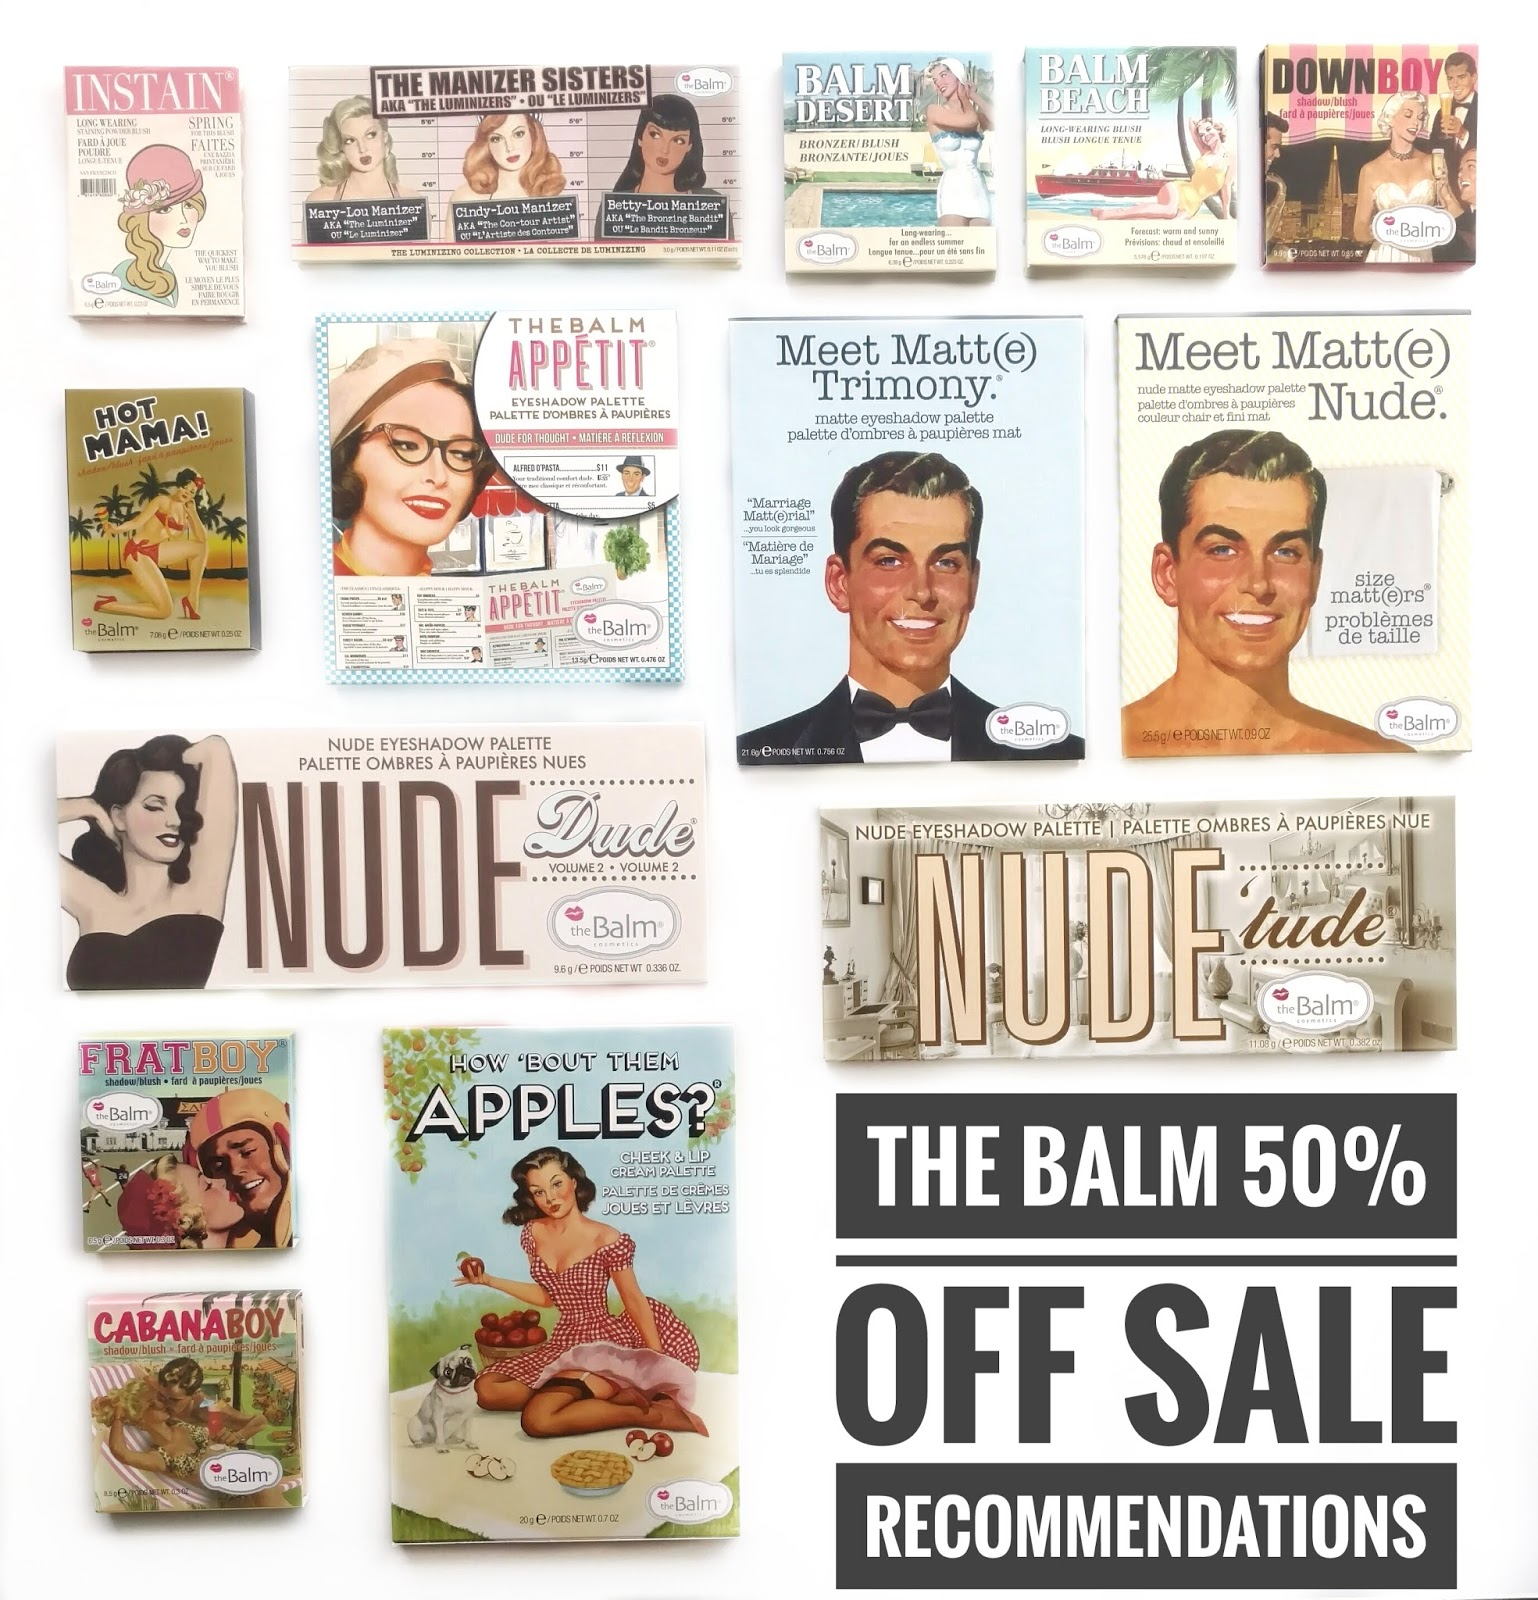 the balm 50% off sale